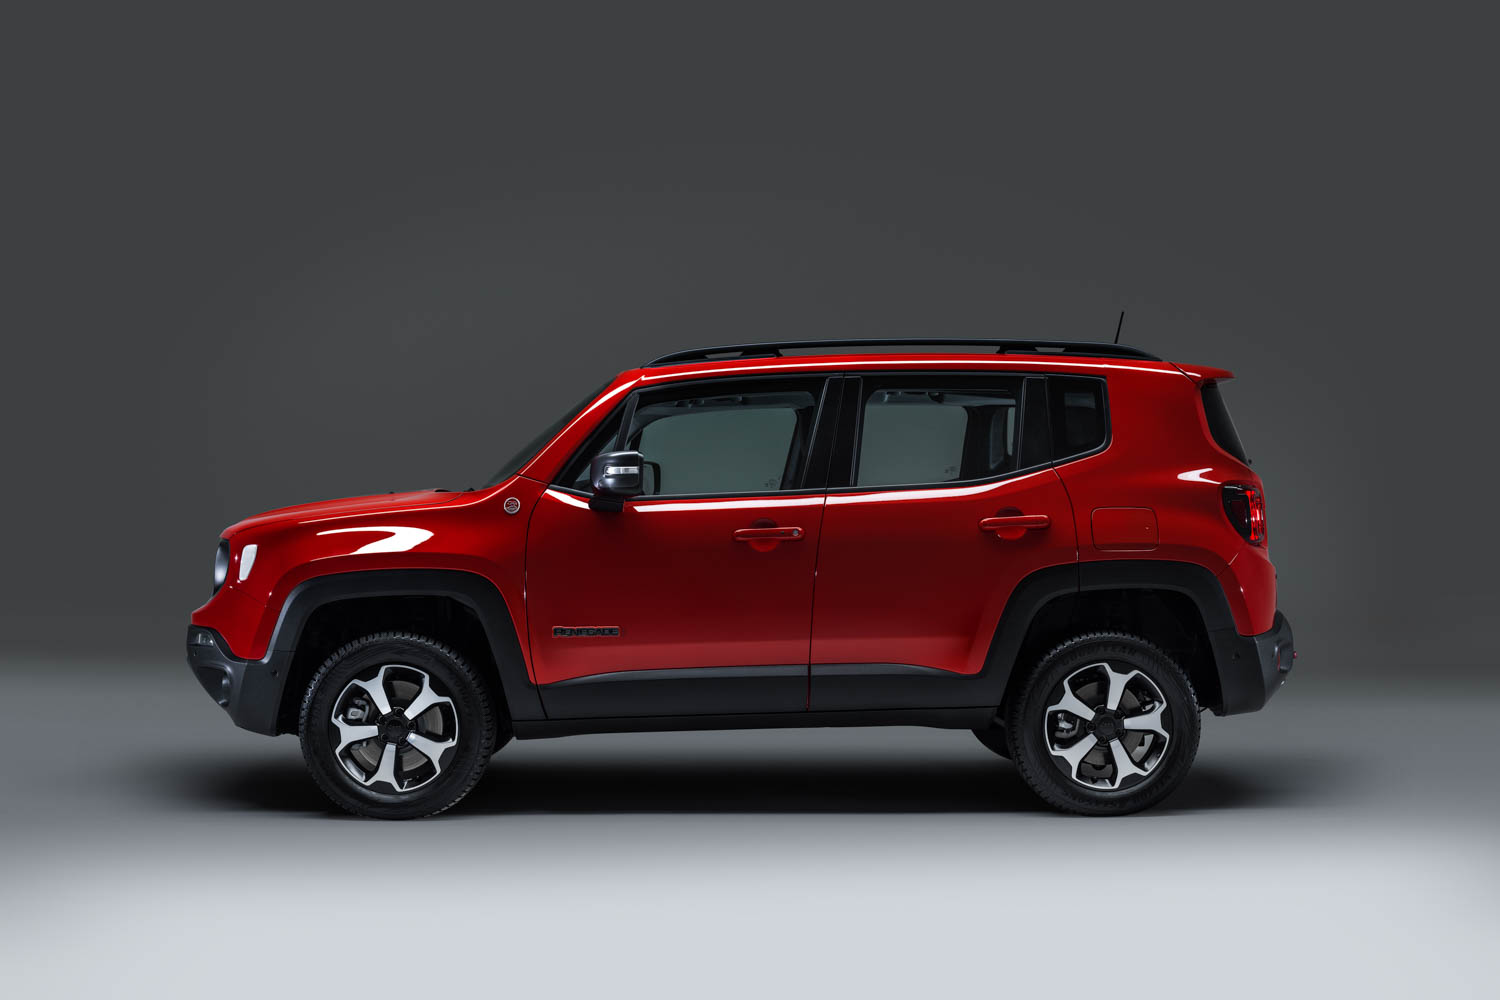 Jeep Renegade Plug-in Hybrid profile